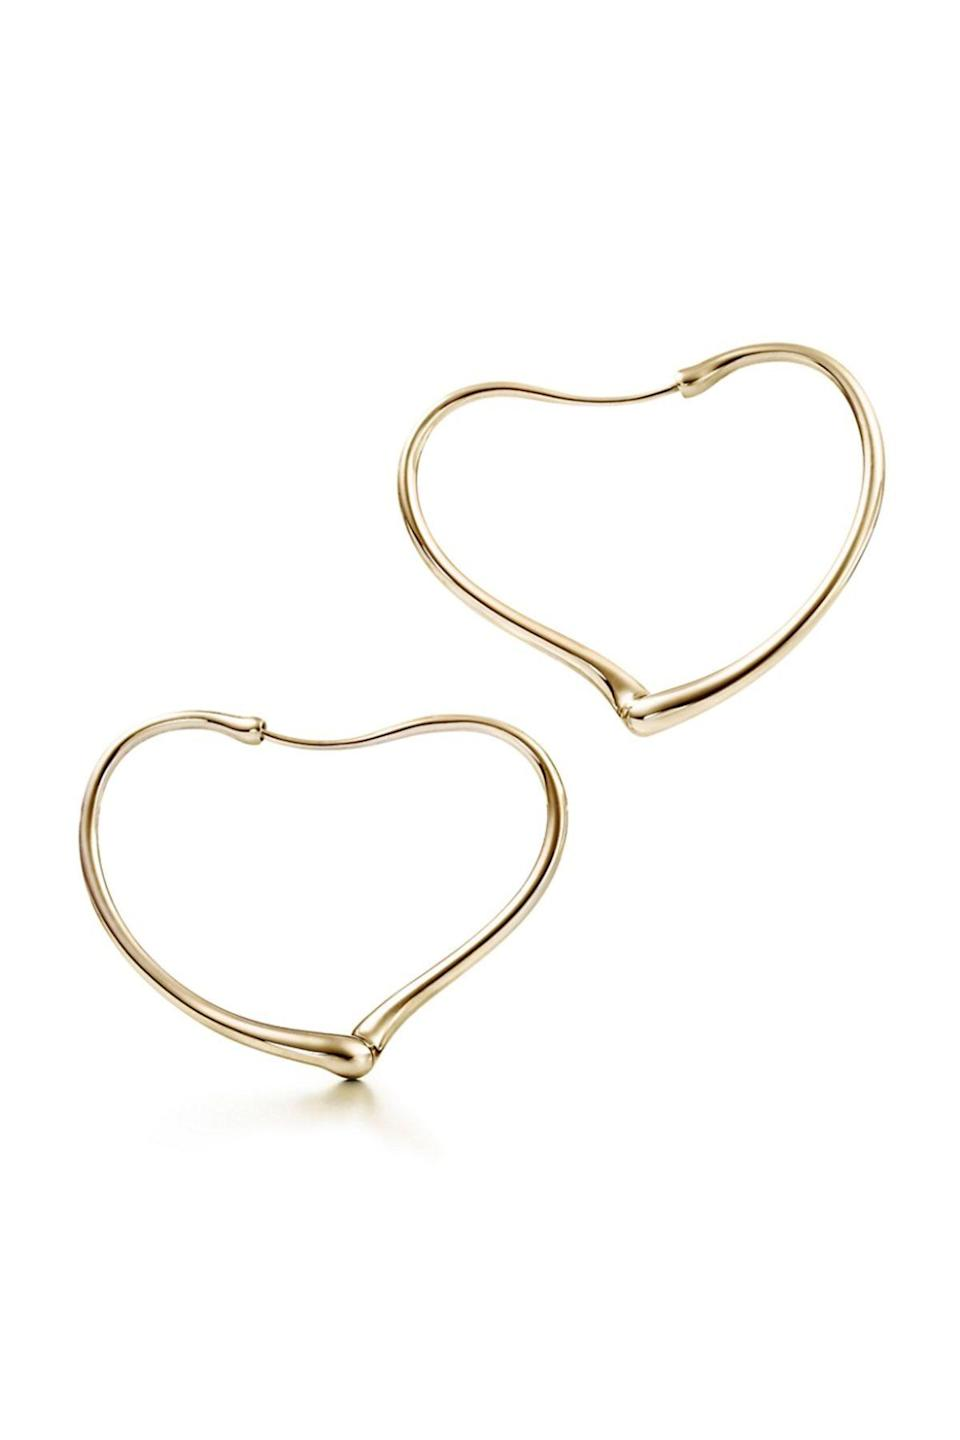 """<p><strong>Tiffany & Co.</strong></p><p>tiffany.com</p><p><strong>$3000.00</strong></p><p><a href=""""https://www.tiffany.com/jewelry/earrings/elsa-peretti-open-heart-hoop-earrings-GRP01649/"""" rel=""""nofollow noopener"""" target=""""_blank"""" data-ylk=""""slk:Shop Now"""" class=""""link rapid-noclick-resp"""">Shop Now</a></p><p>Relax so hard that even your hoops go with the flow. </p>"""